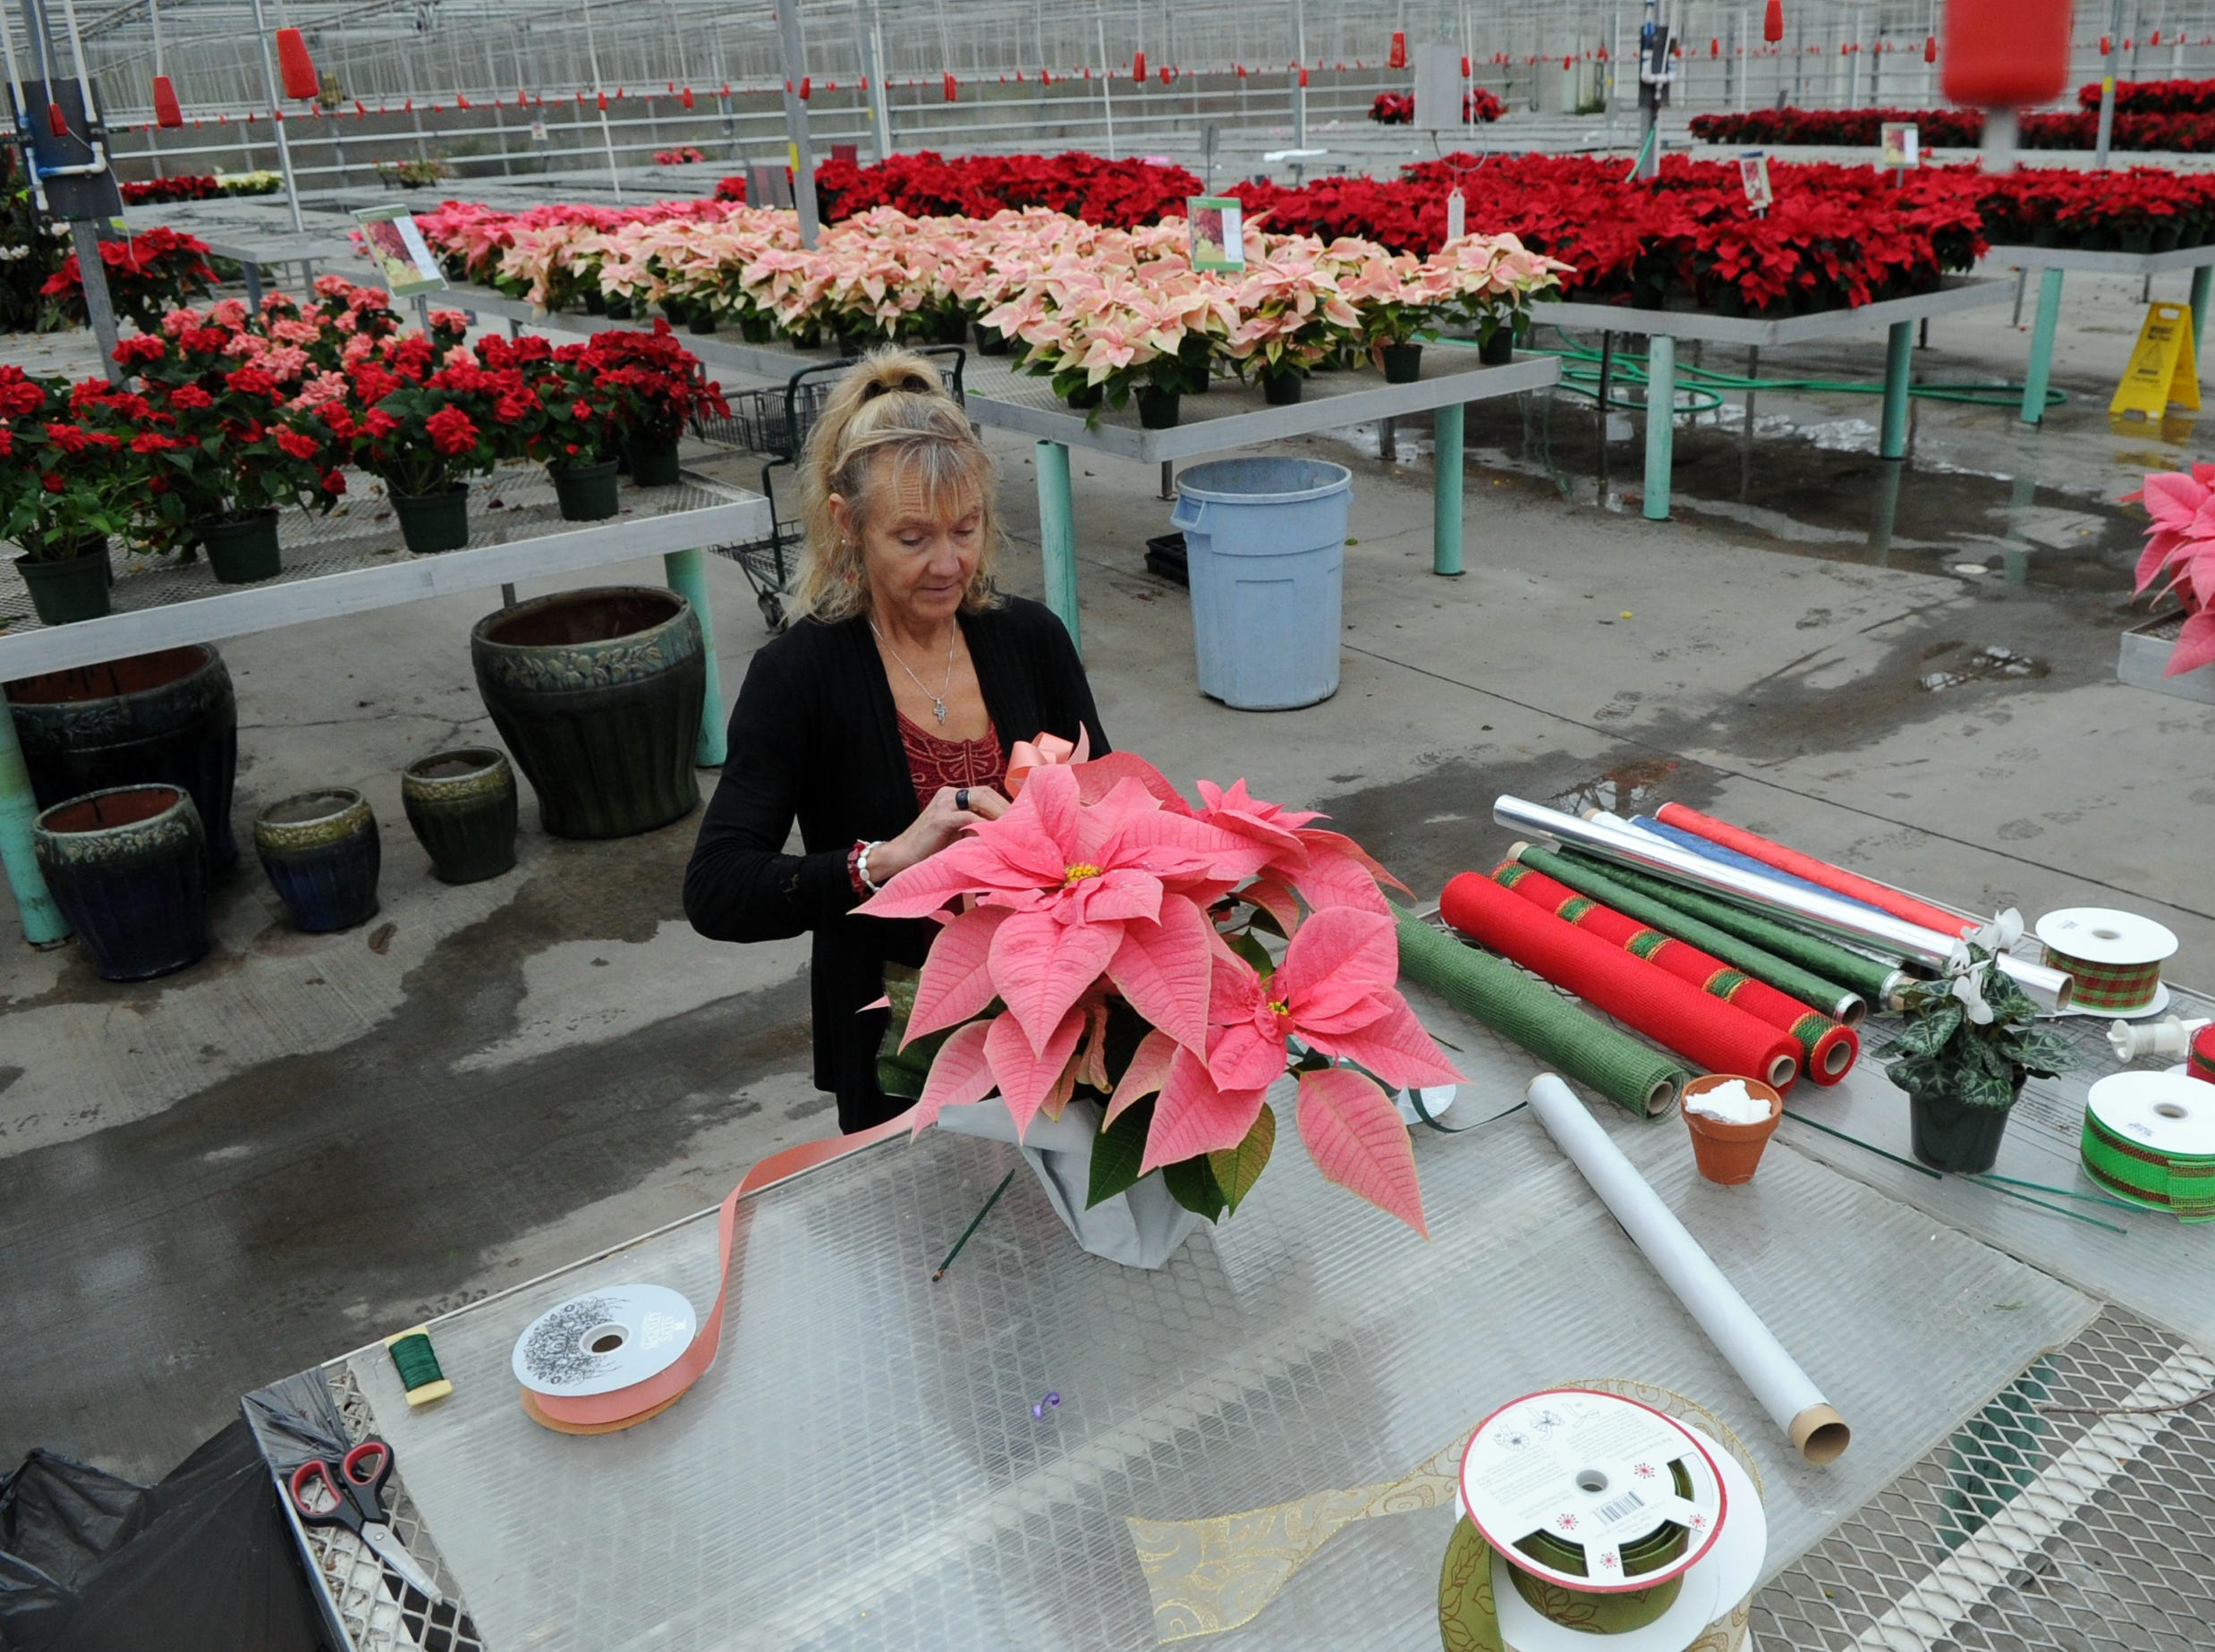 Lisa Stanley decorates a poinsettia at her business, Stanley's Greenhouse, in South Knoxville Friday, Dec. 16, 2011.  Stanley's husband, Rocky, begins growing the plants for the holiday season in the summer.